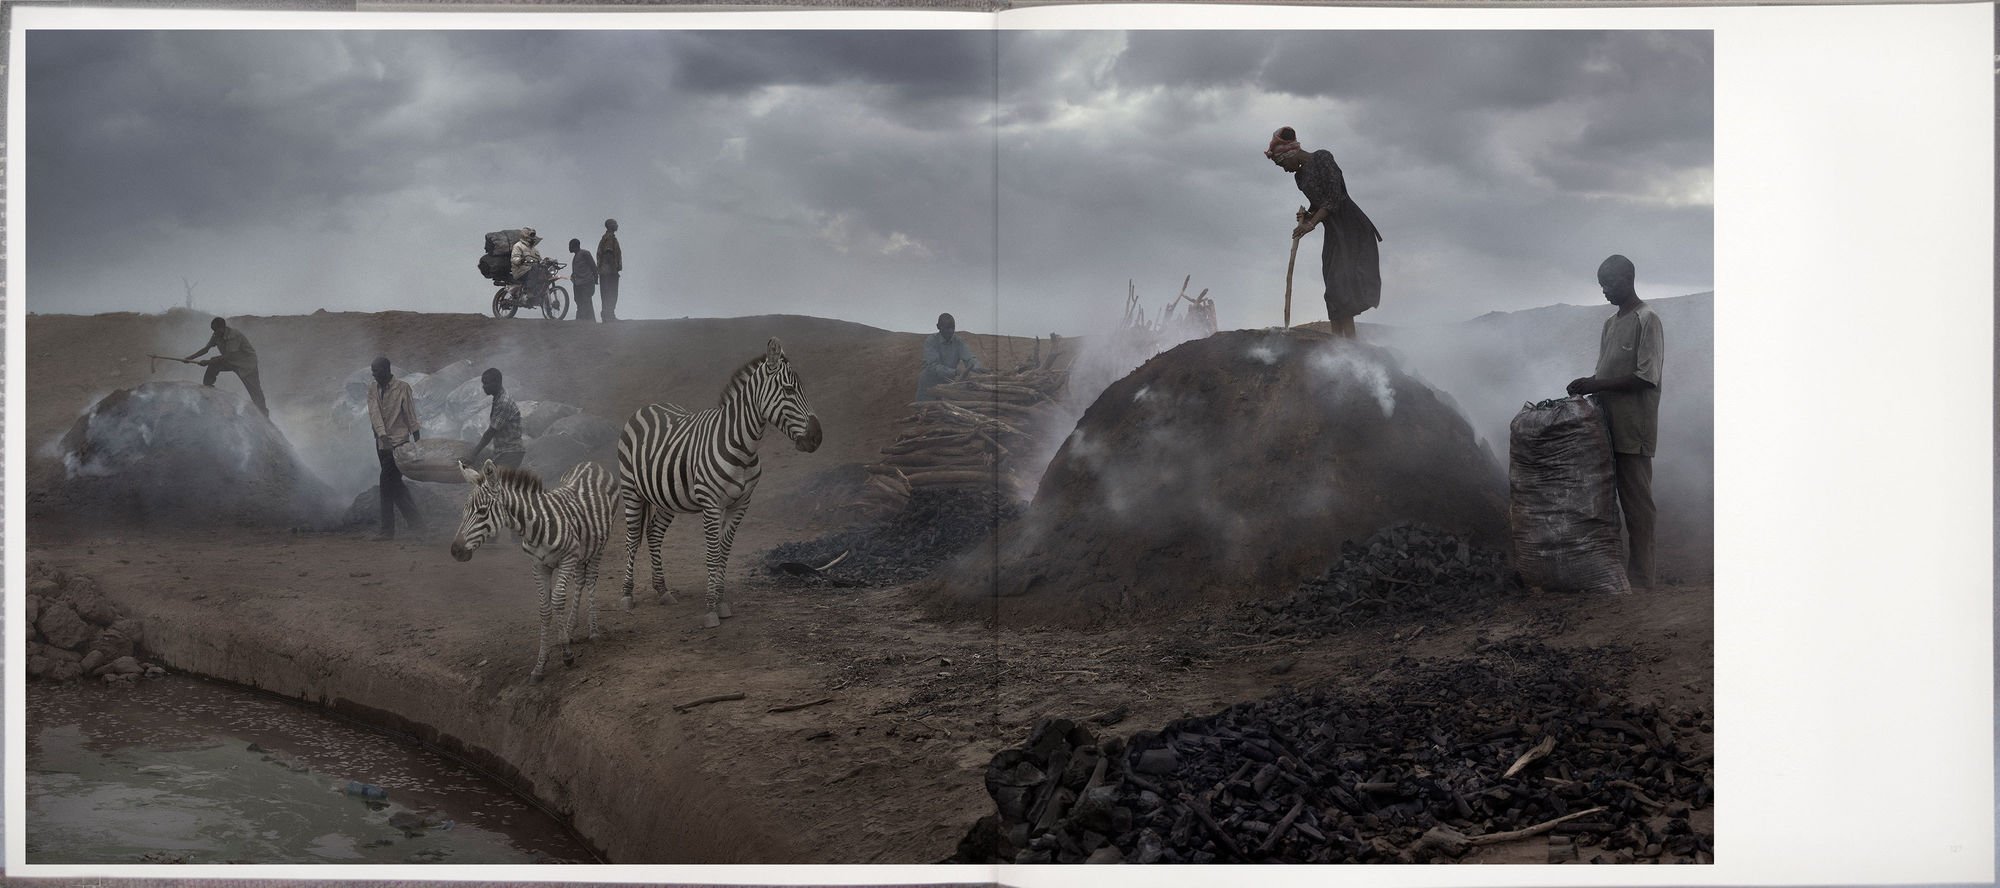 NICK BRANDT 'THIS EMPTY WORLD' (Thames & Hudson)